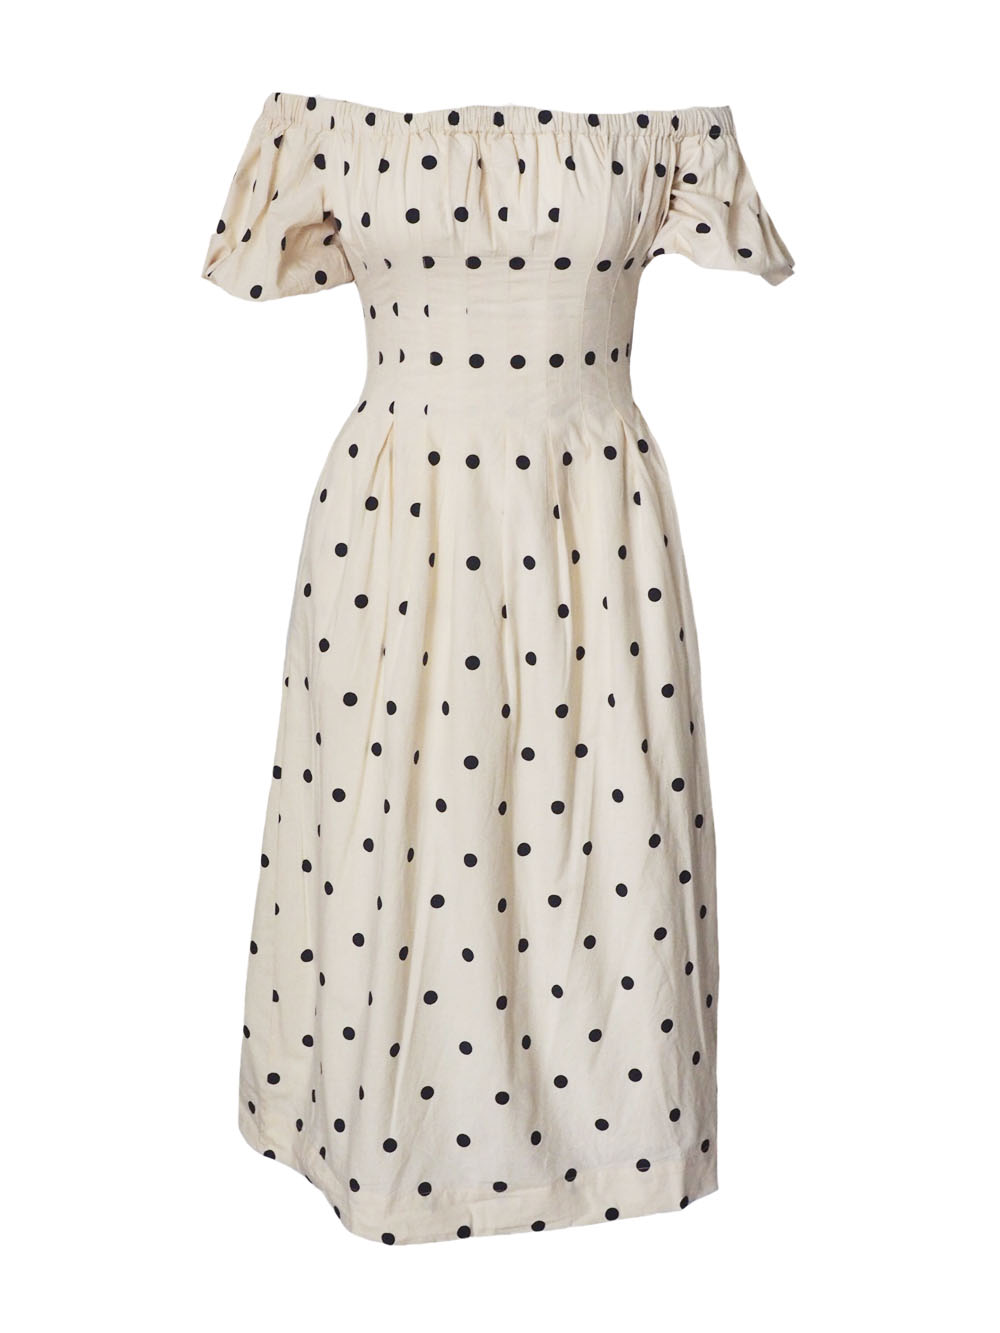 Ajaie Aaie navy blue polka dot dress.jpg